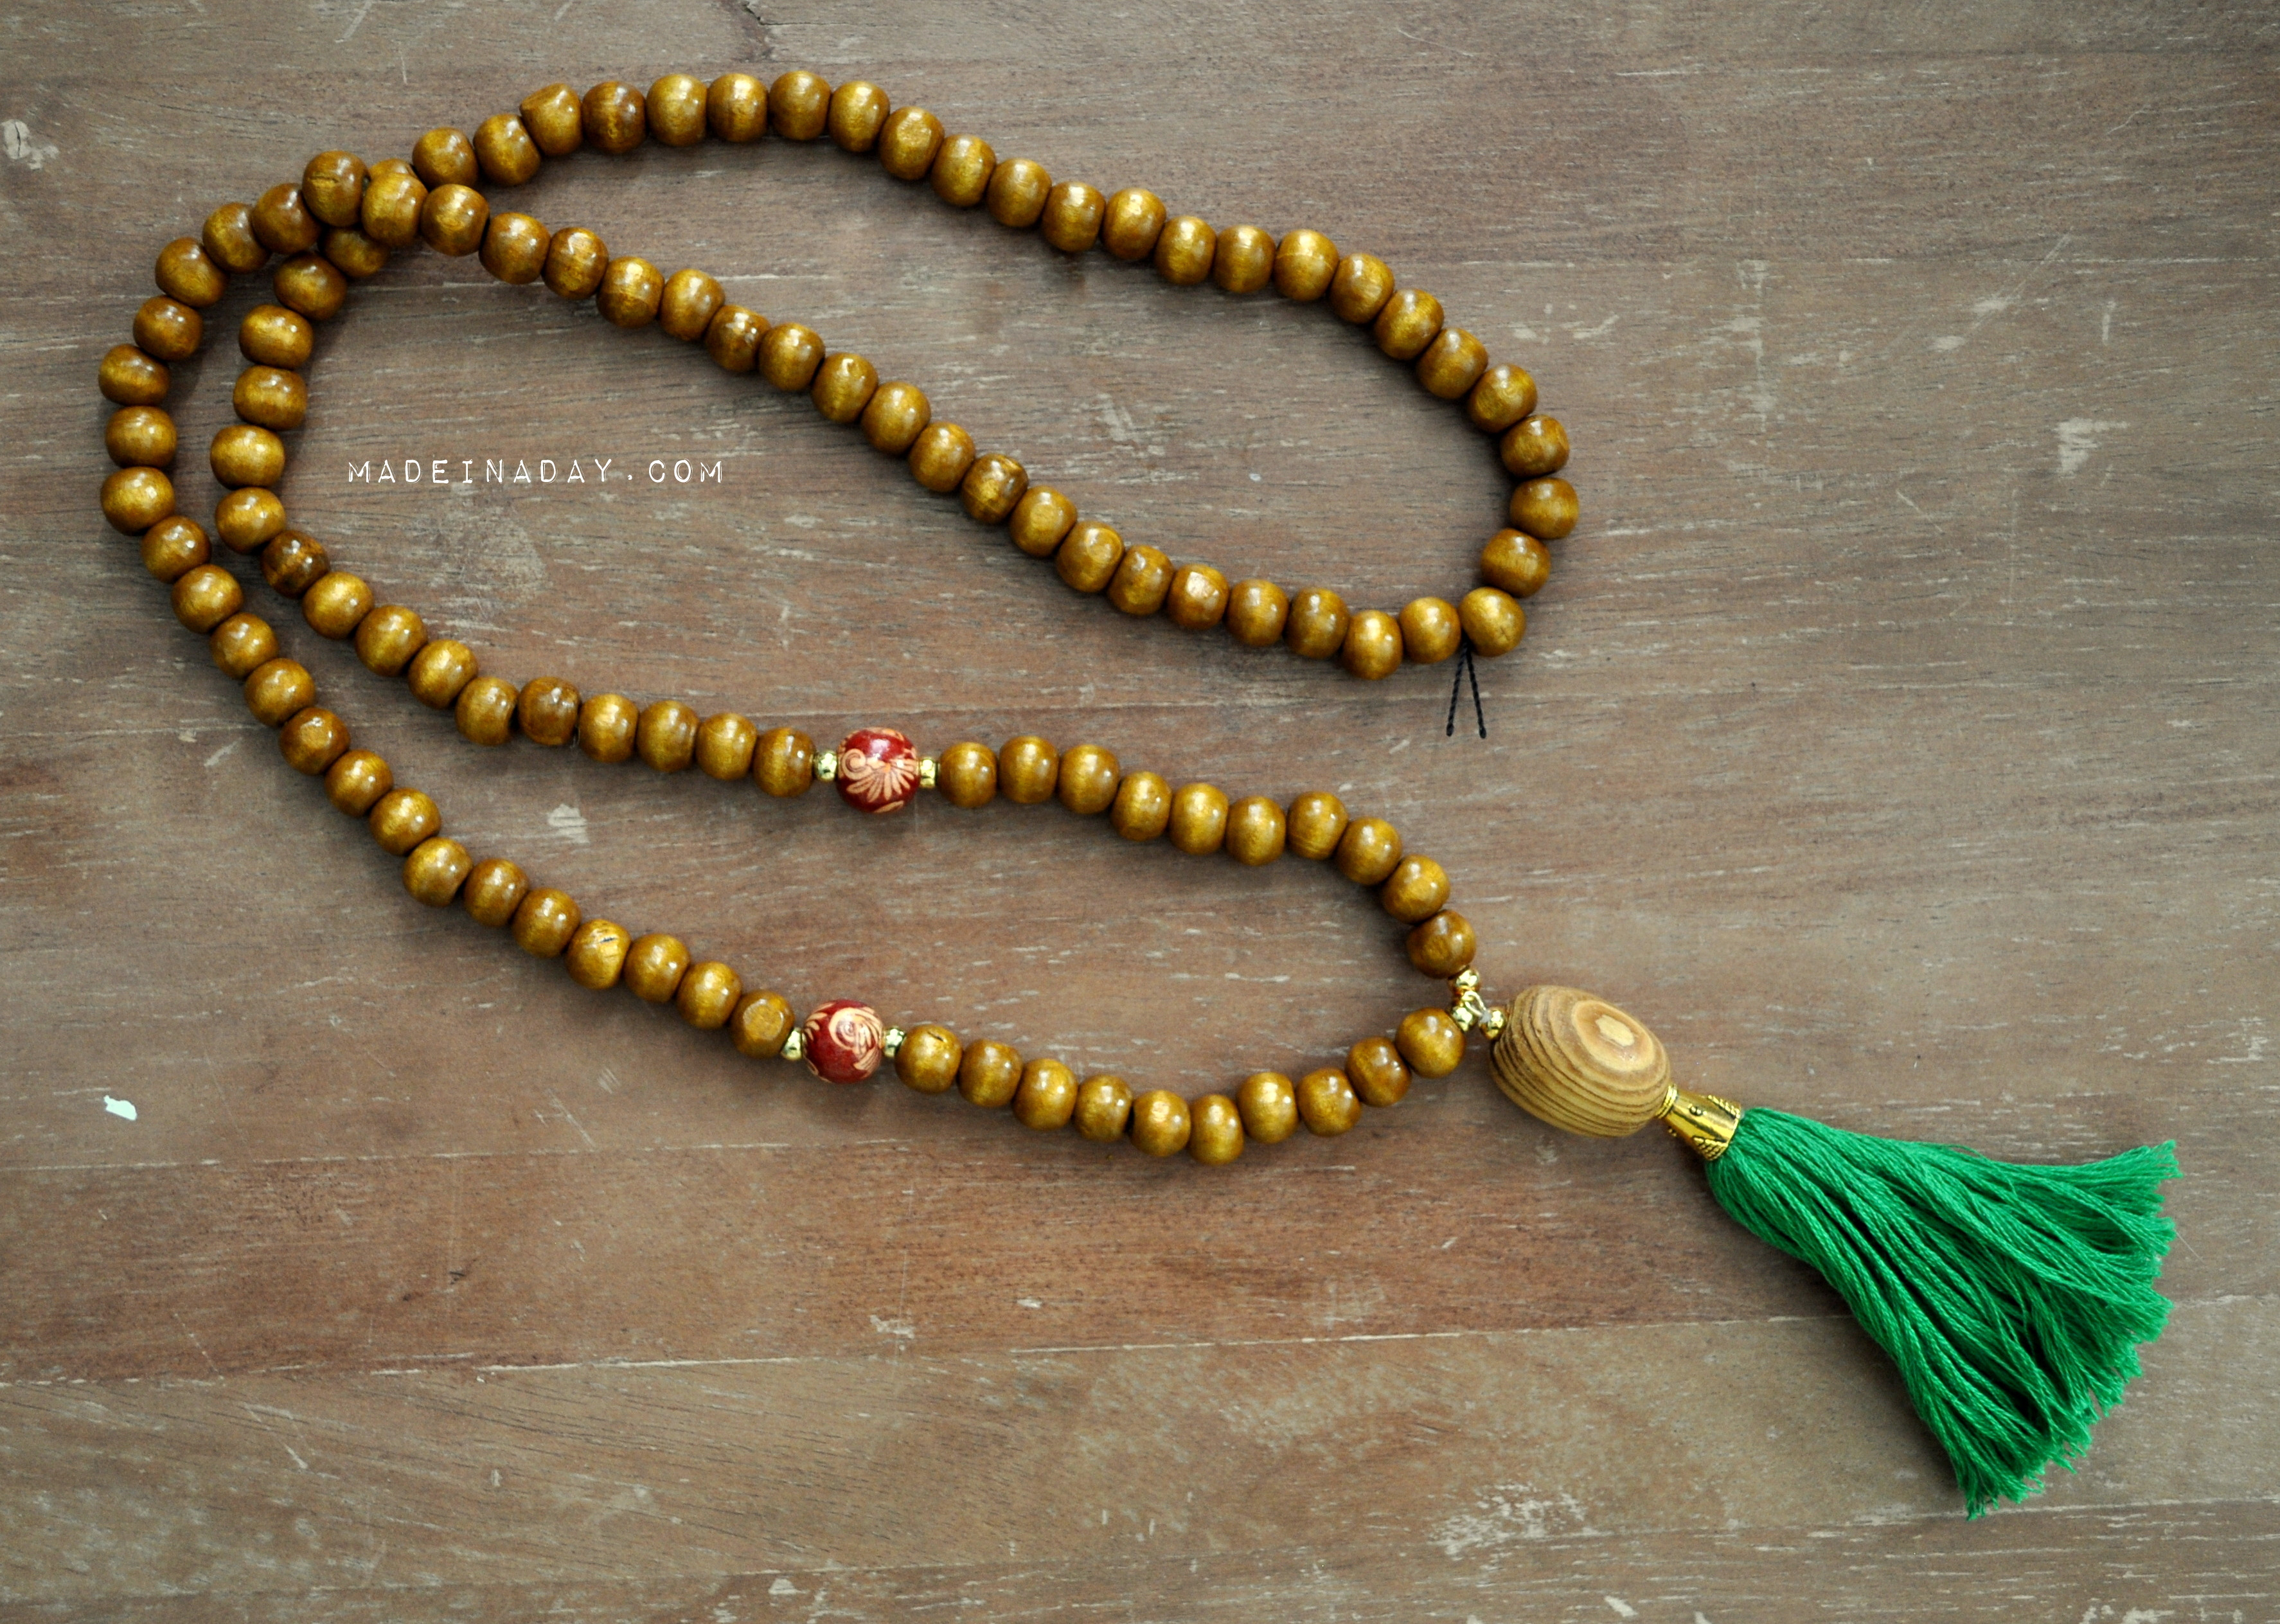 Best ideas about DIY Tassel Necklaces . Save or Pin How to Make DIY Beaded Tassel Necklaces Now.